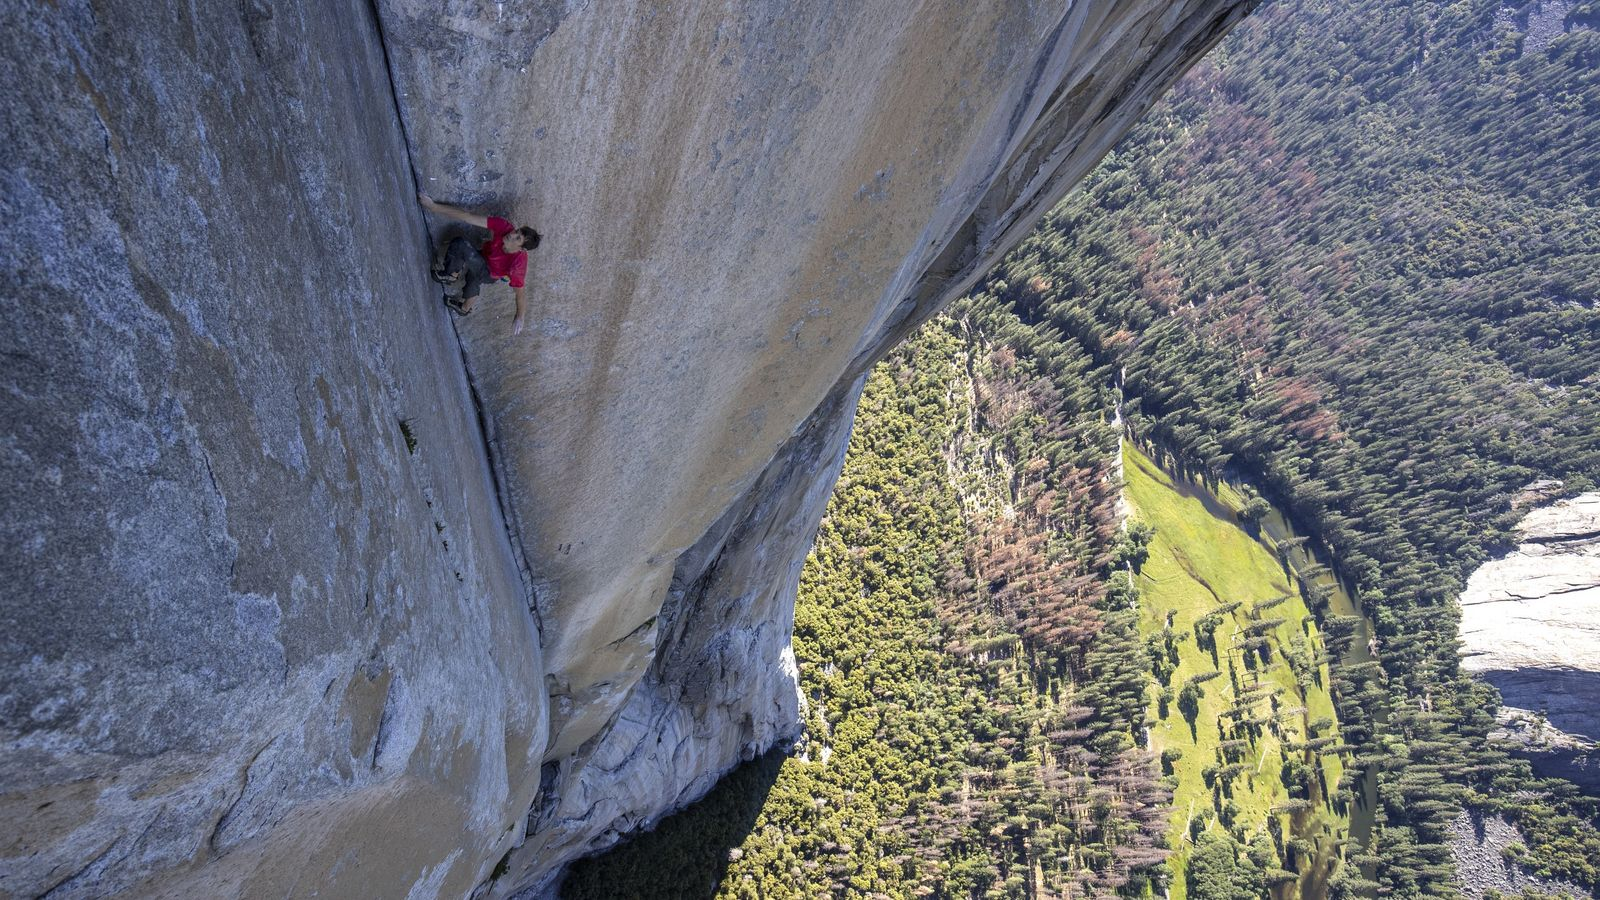 Without ropes, bolts or protection, Alex Honnold is at the mercy of his own ability. One ...